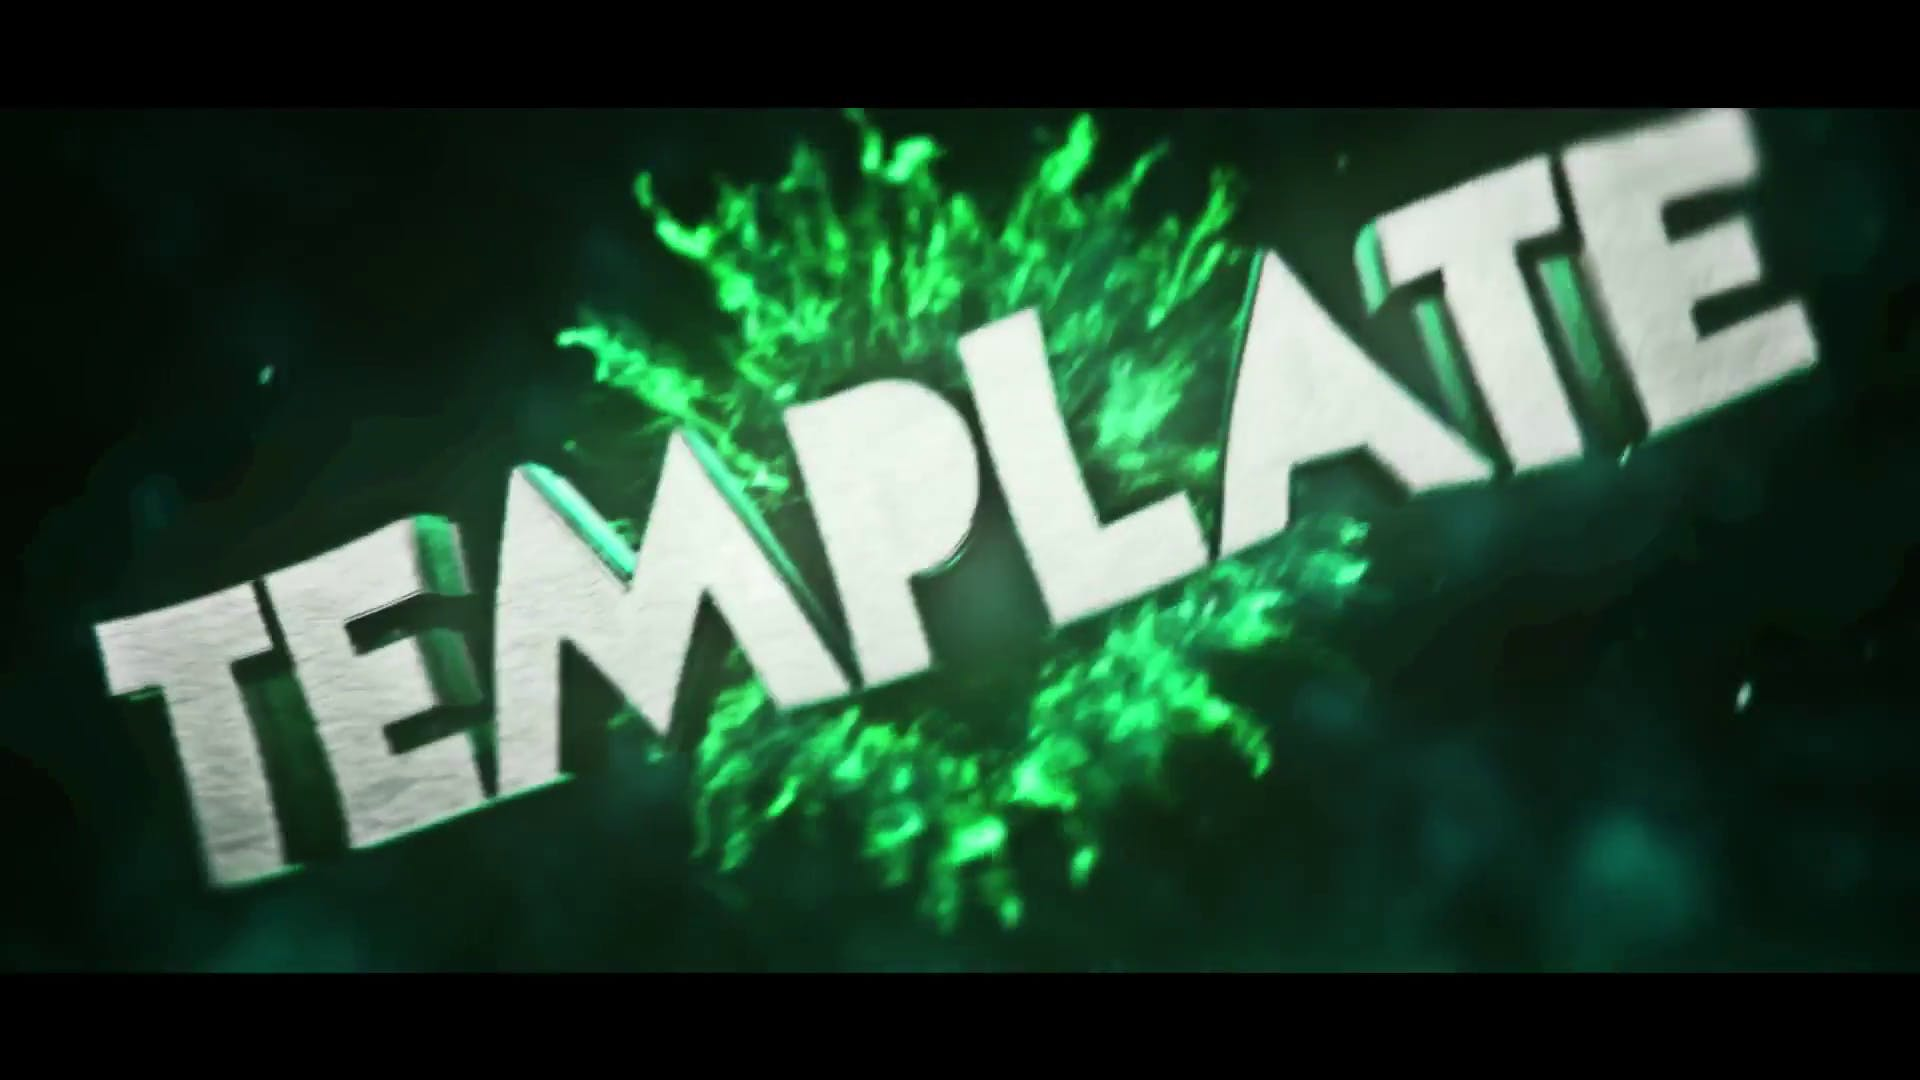 FREE CleanShockwave Green C4D AE Intro Template 2015